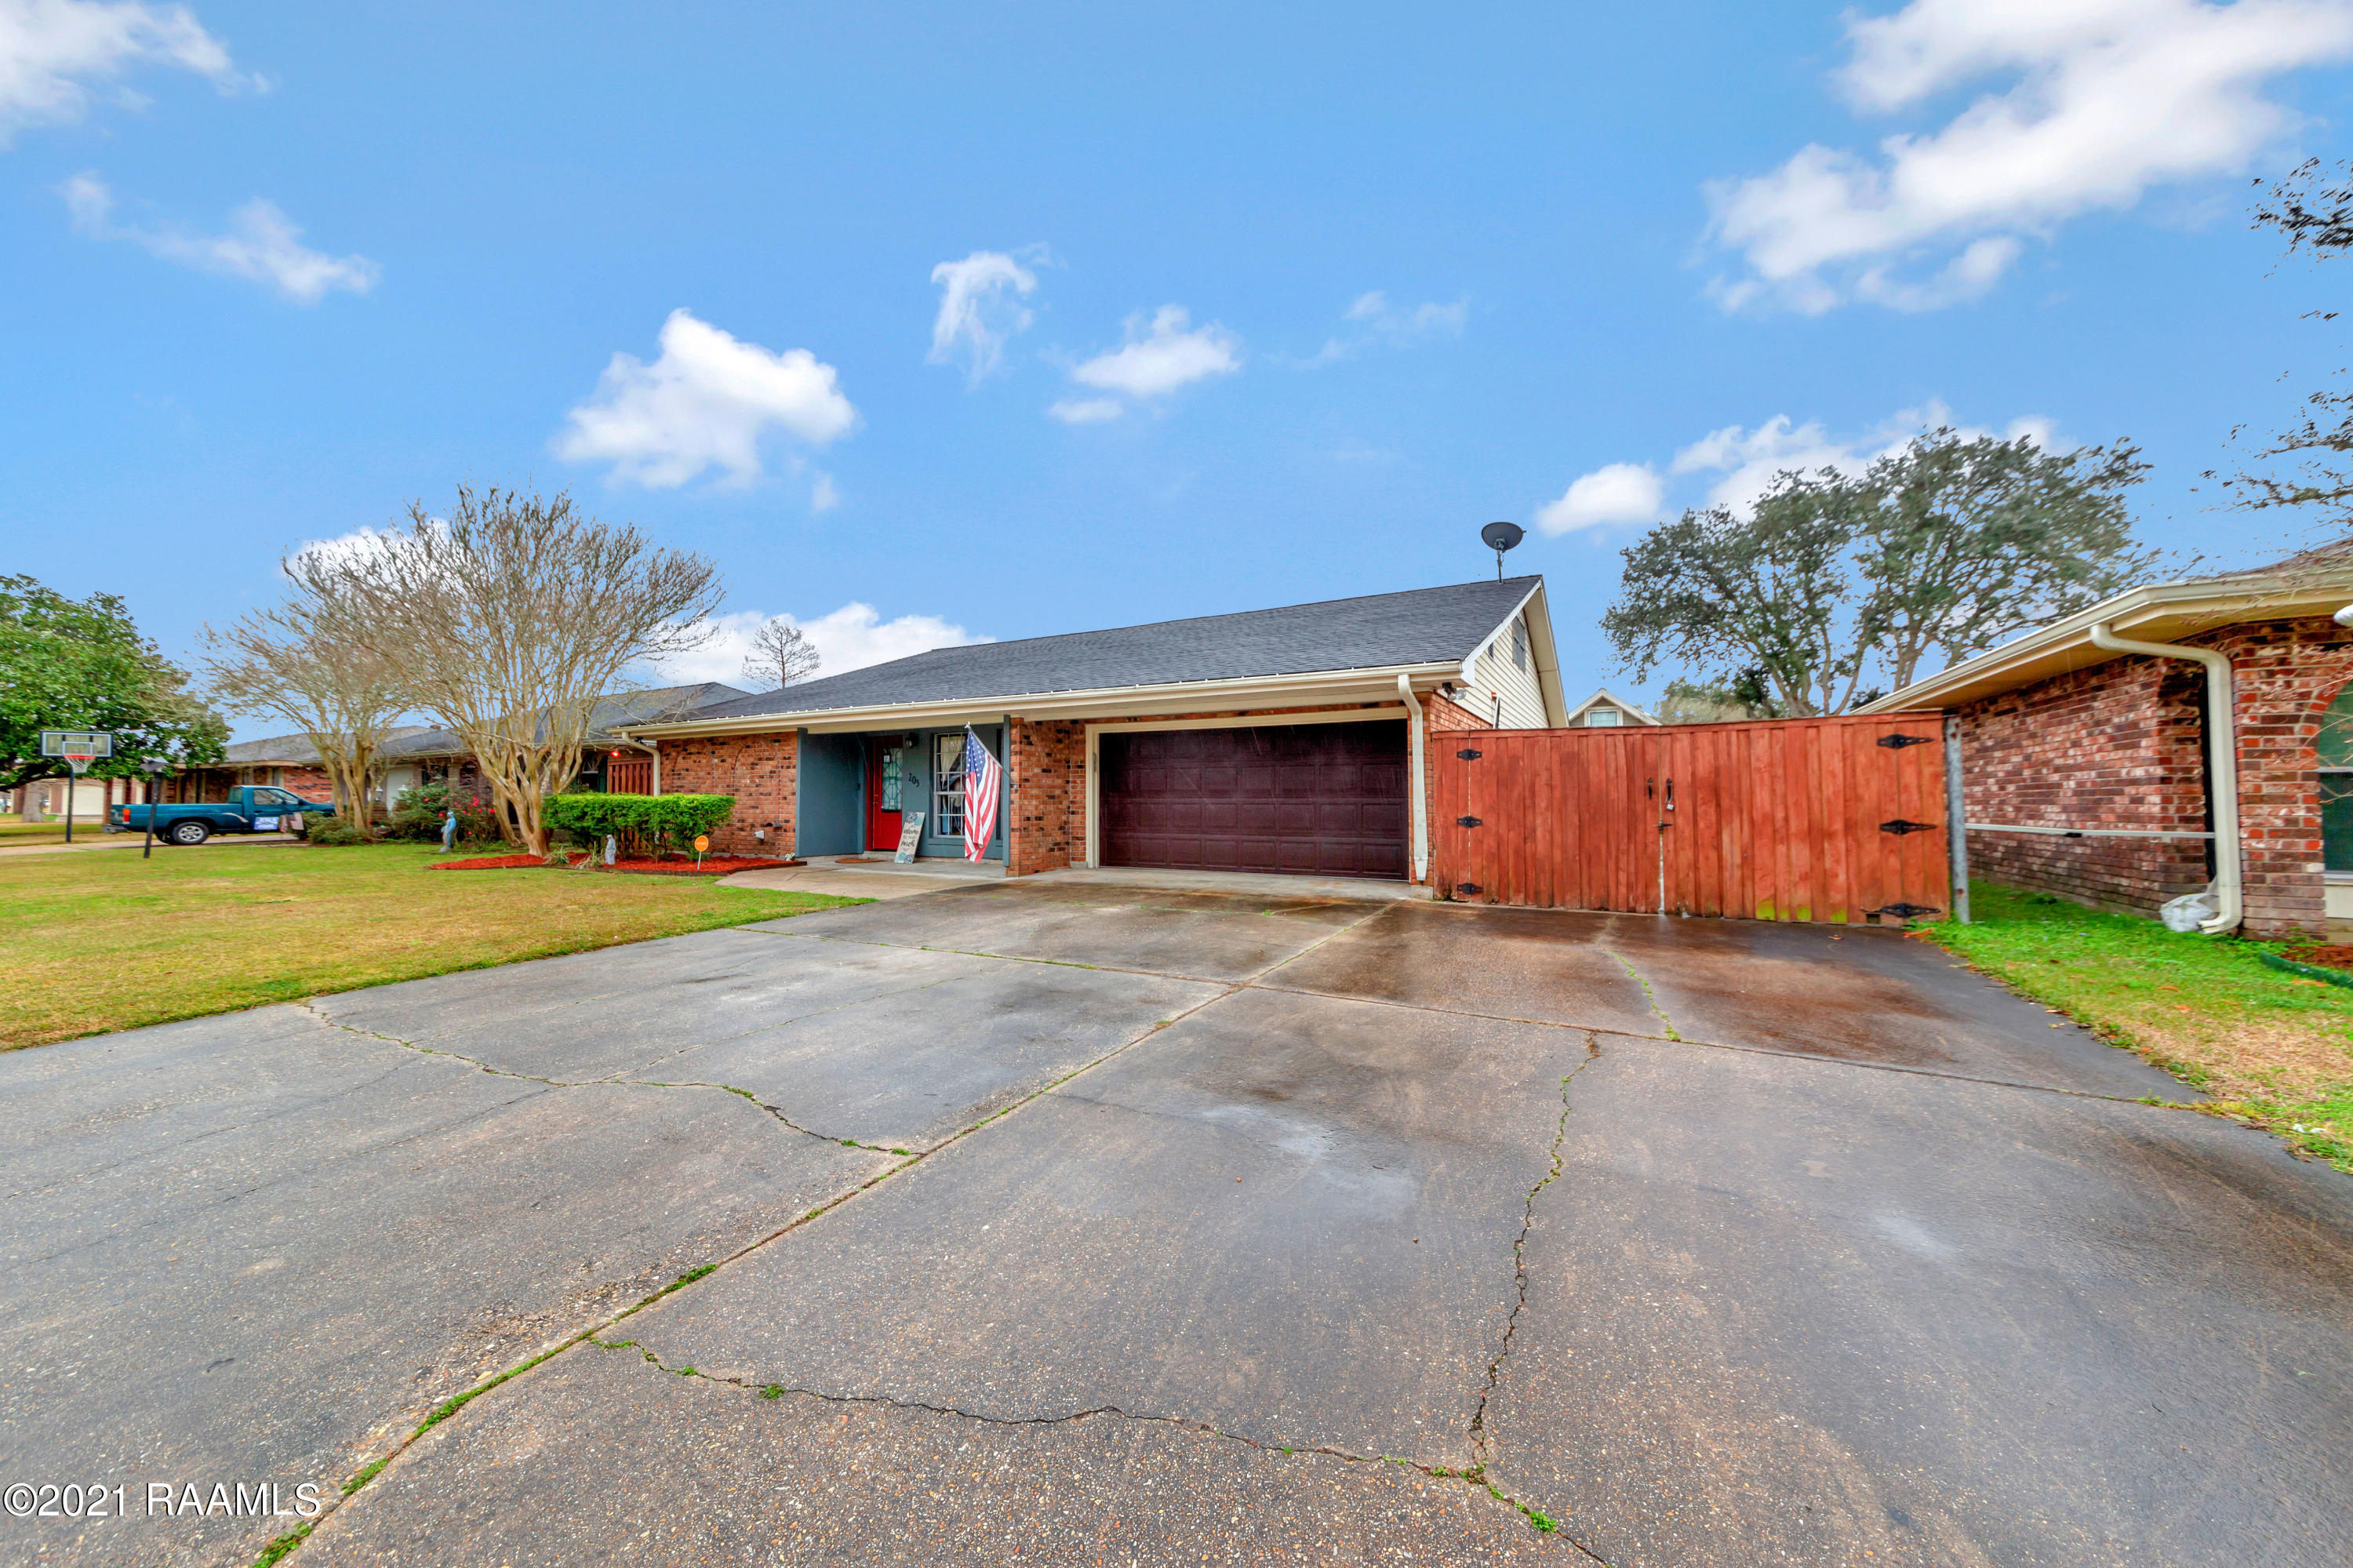 205 Hogan Street, Berwick, LA 70342 Photo #3